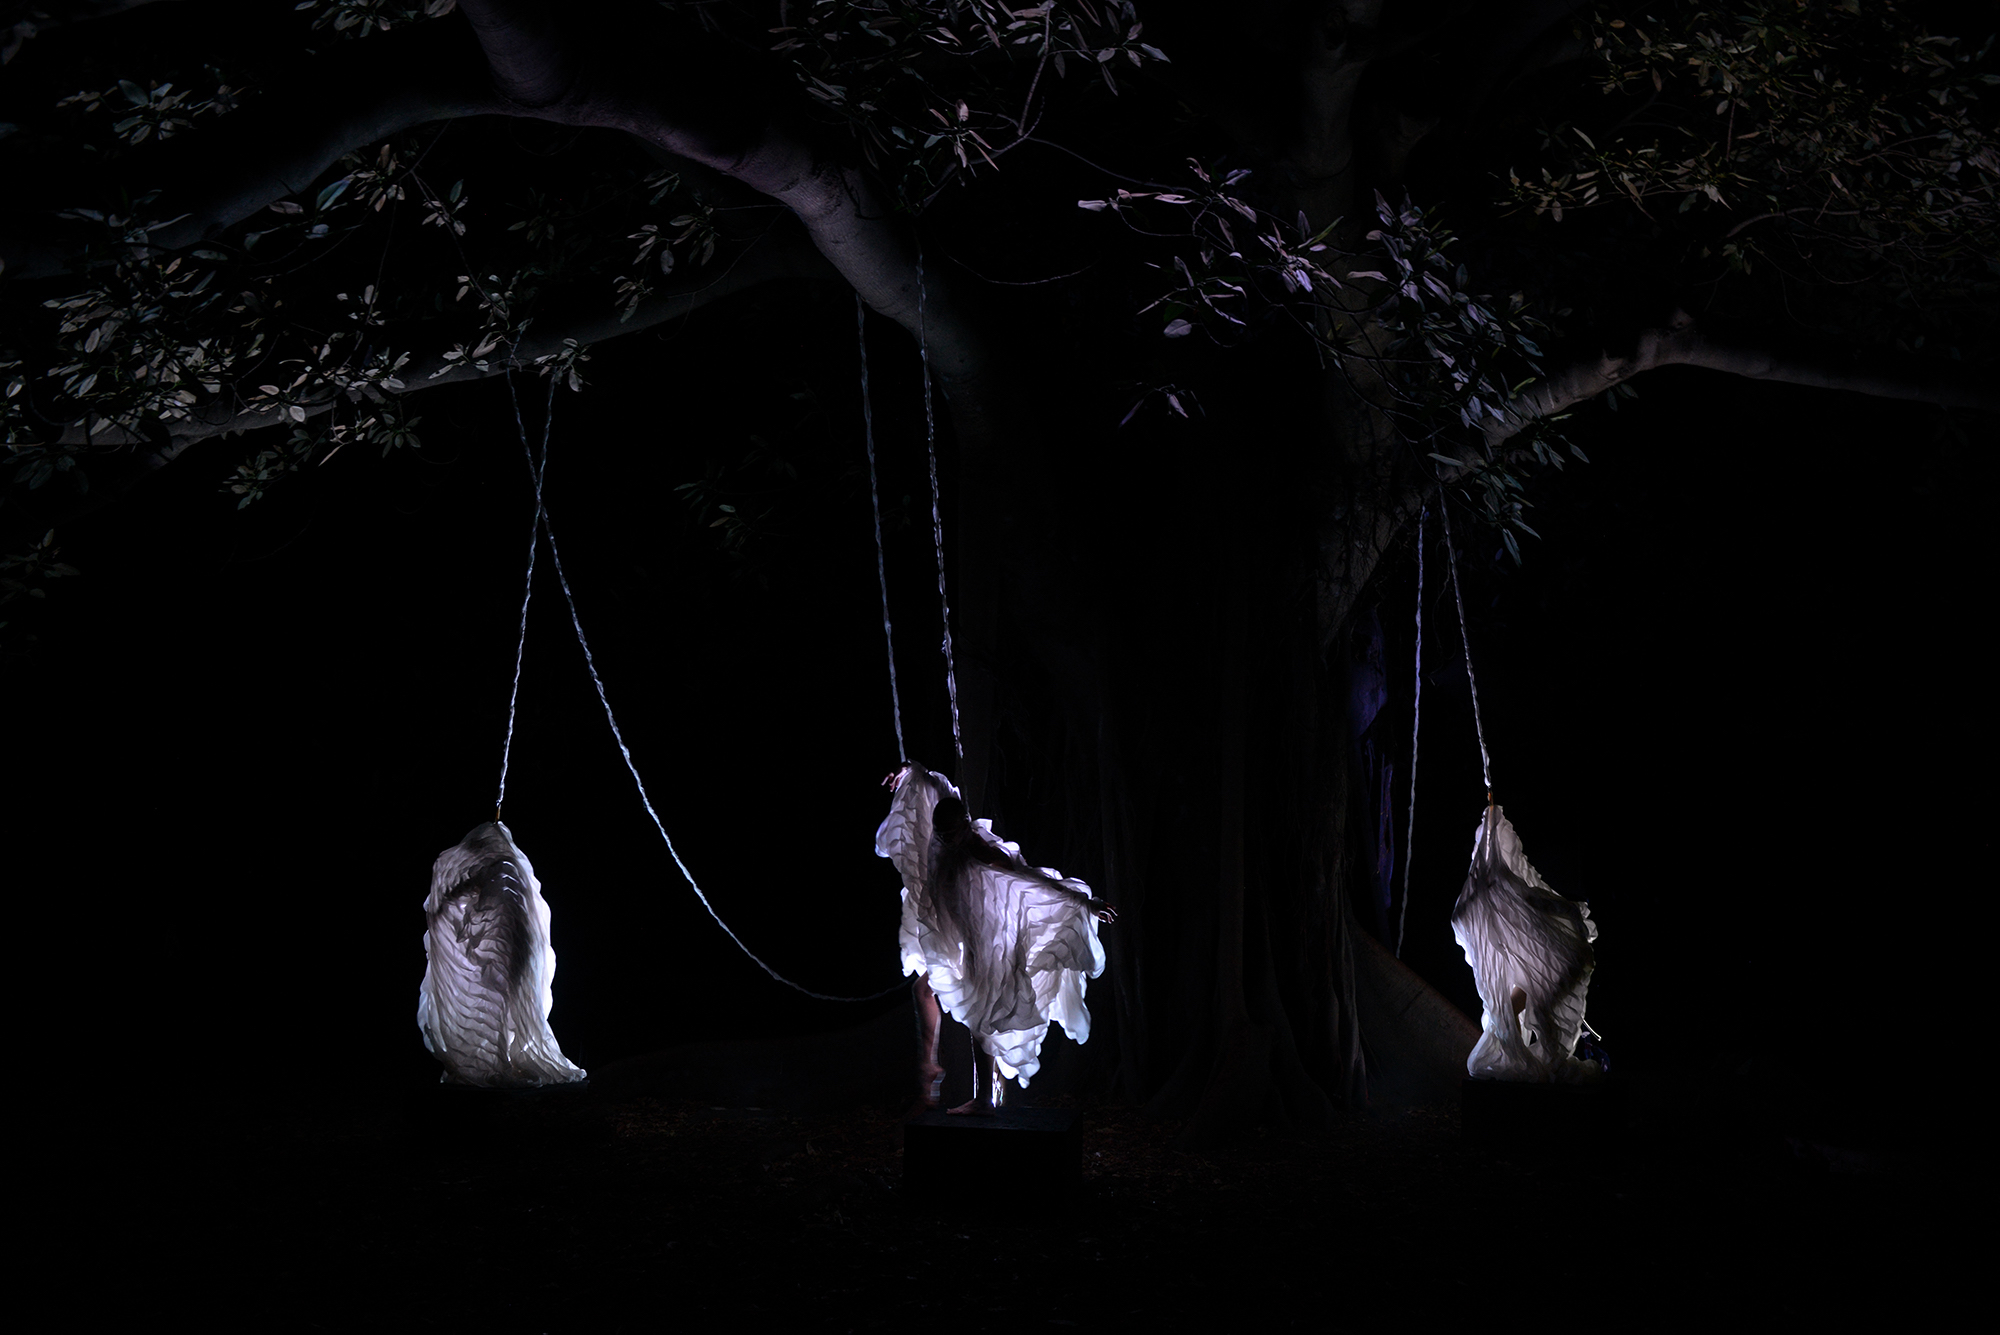 QUAM CHRYSALLIDEM as part of GLIDER GLOBAL's THE ENLIGHTENMENT PROJECT : ROYAL BOTANIC GARDENS VIVID FESTIVAL SYDNEY 2018   static & performative installation  in performance with collaborators : Holly Durant, Samuel Hartnett-Welk & Lily Paskas l photography : Kathy Luu